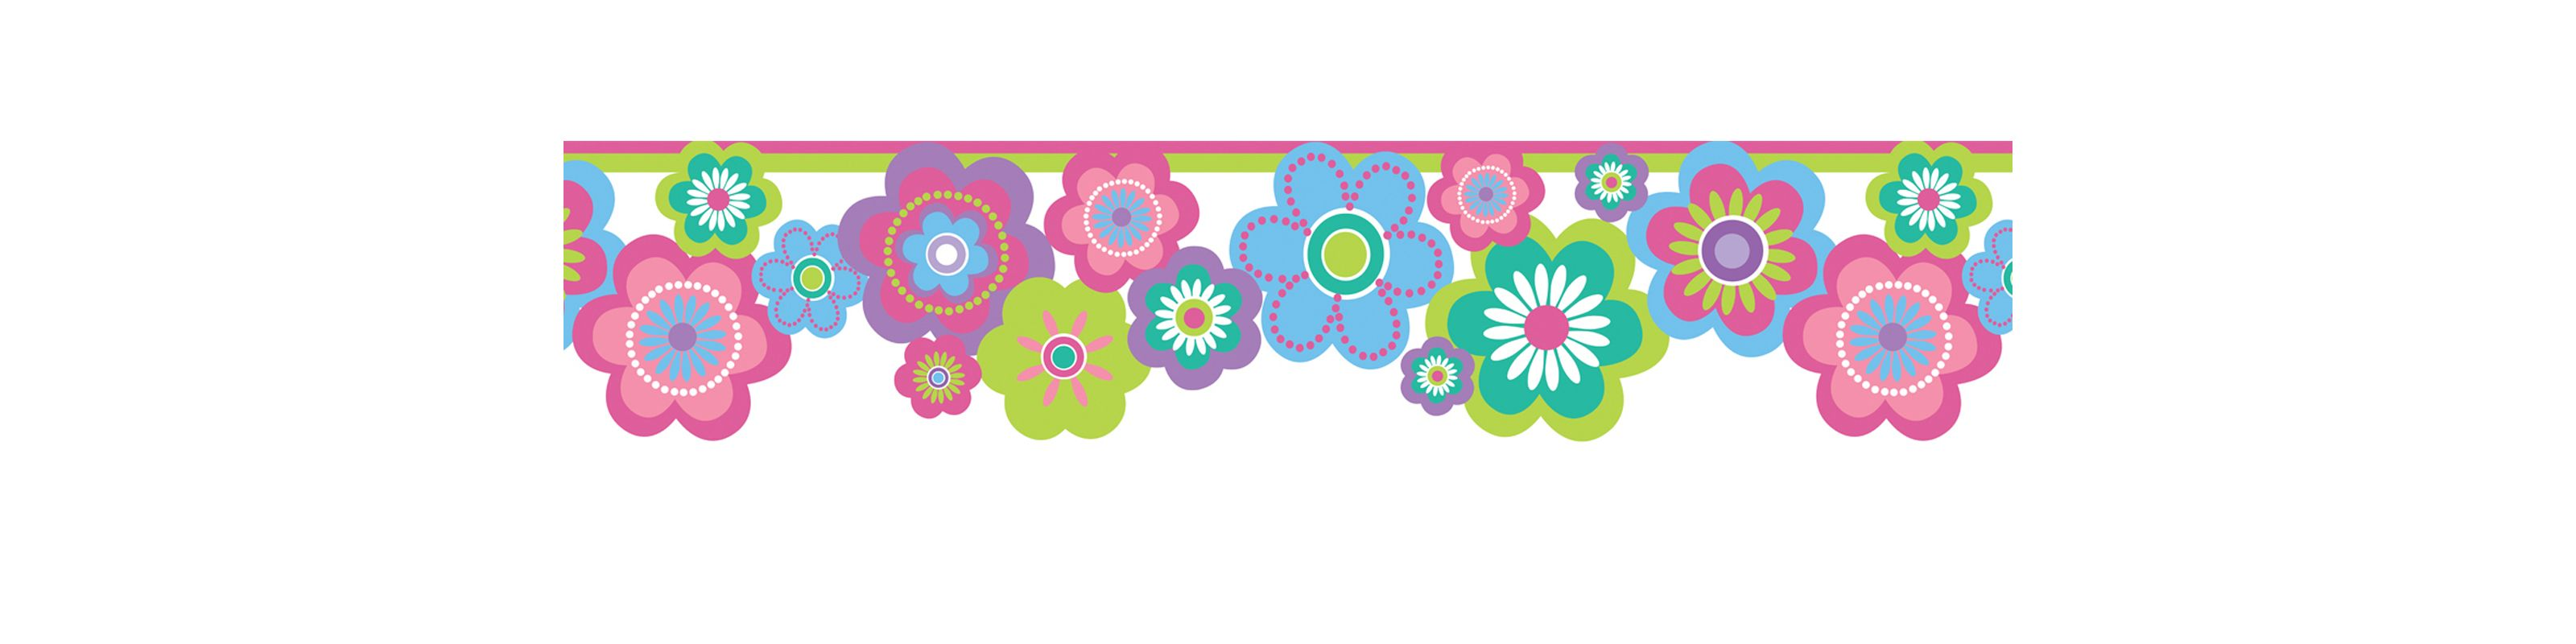 Brewster 443B97627 Flower Power Border Multicolor Flower Border